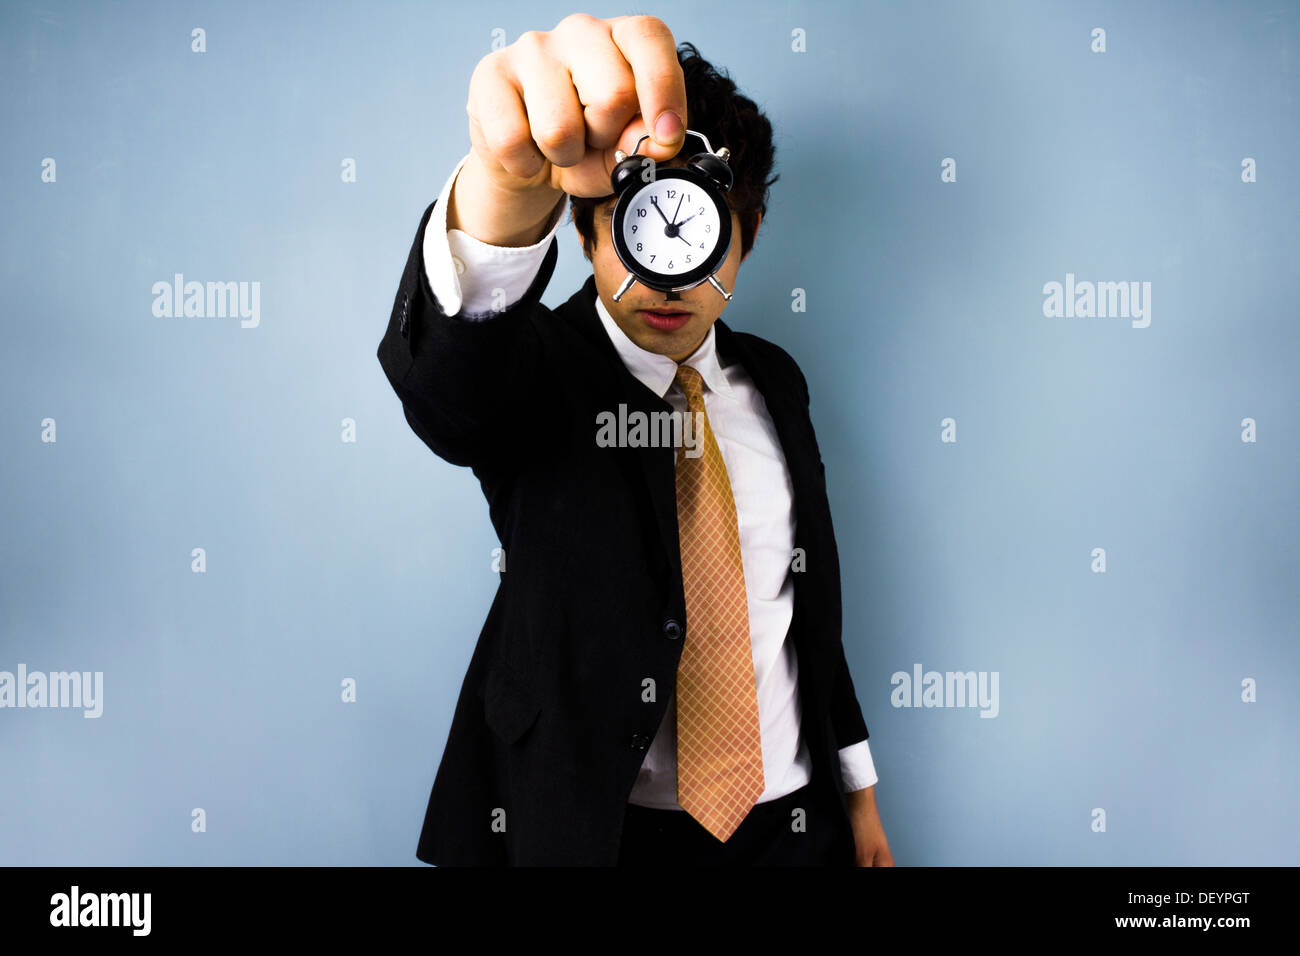 Young business man holding an alarm clock in front of his face - Stock Image